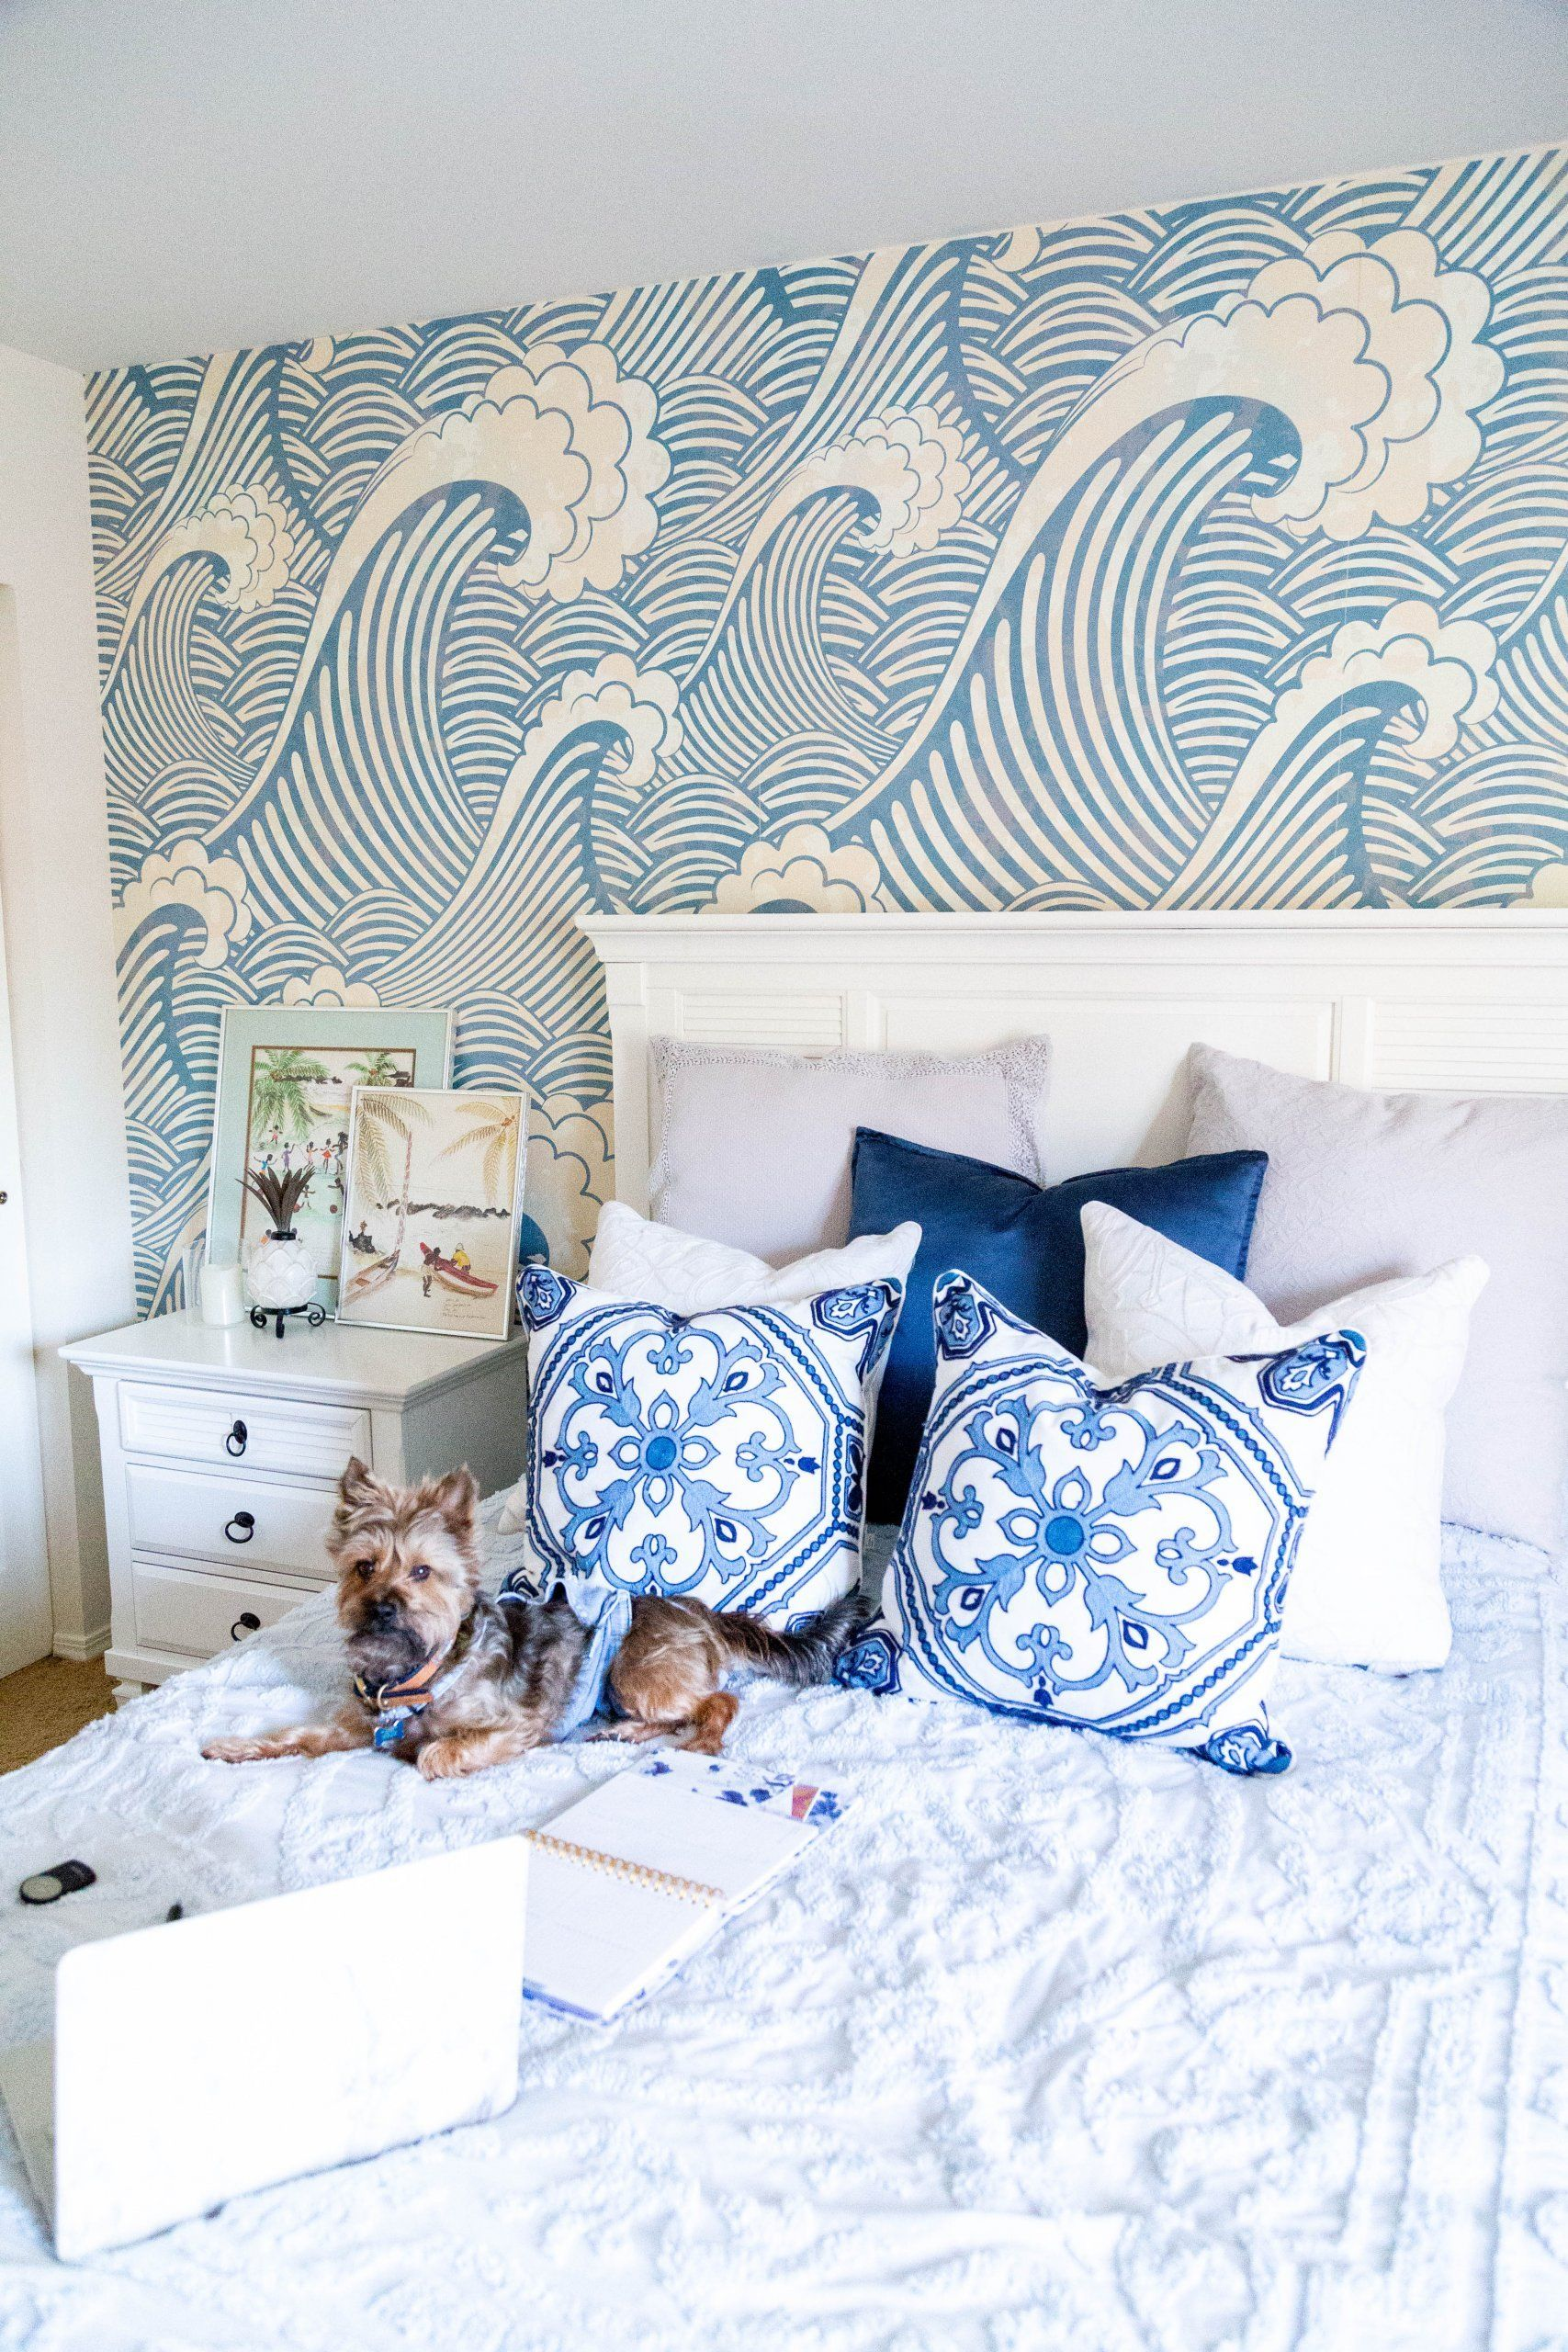 Wallpaper Accent Wall Bedroom in 2020 | Accent wall ...